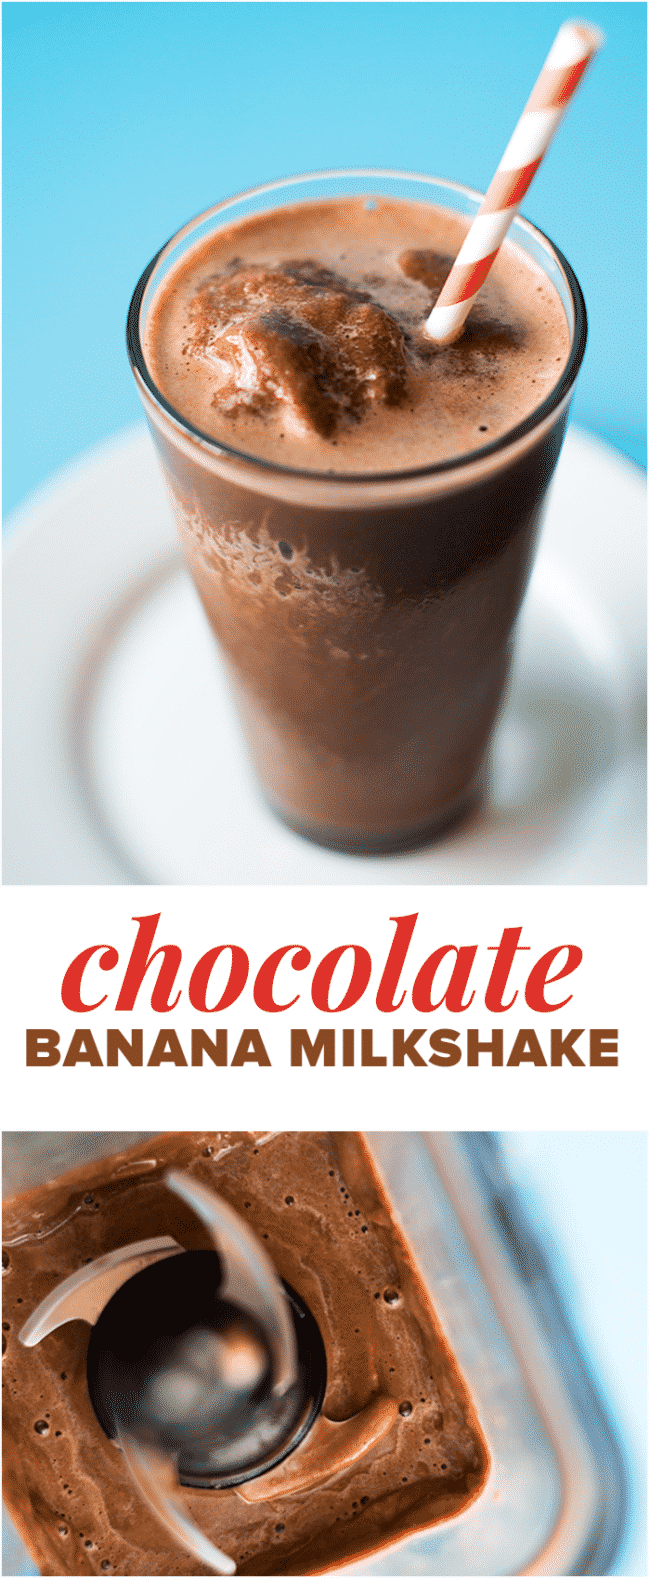 Chocolate Banana Milkshake - Kids and adults alike will love this simple but delicious chocolate banana milkshake recipe featuring rich and nutritious Ovaltine!